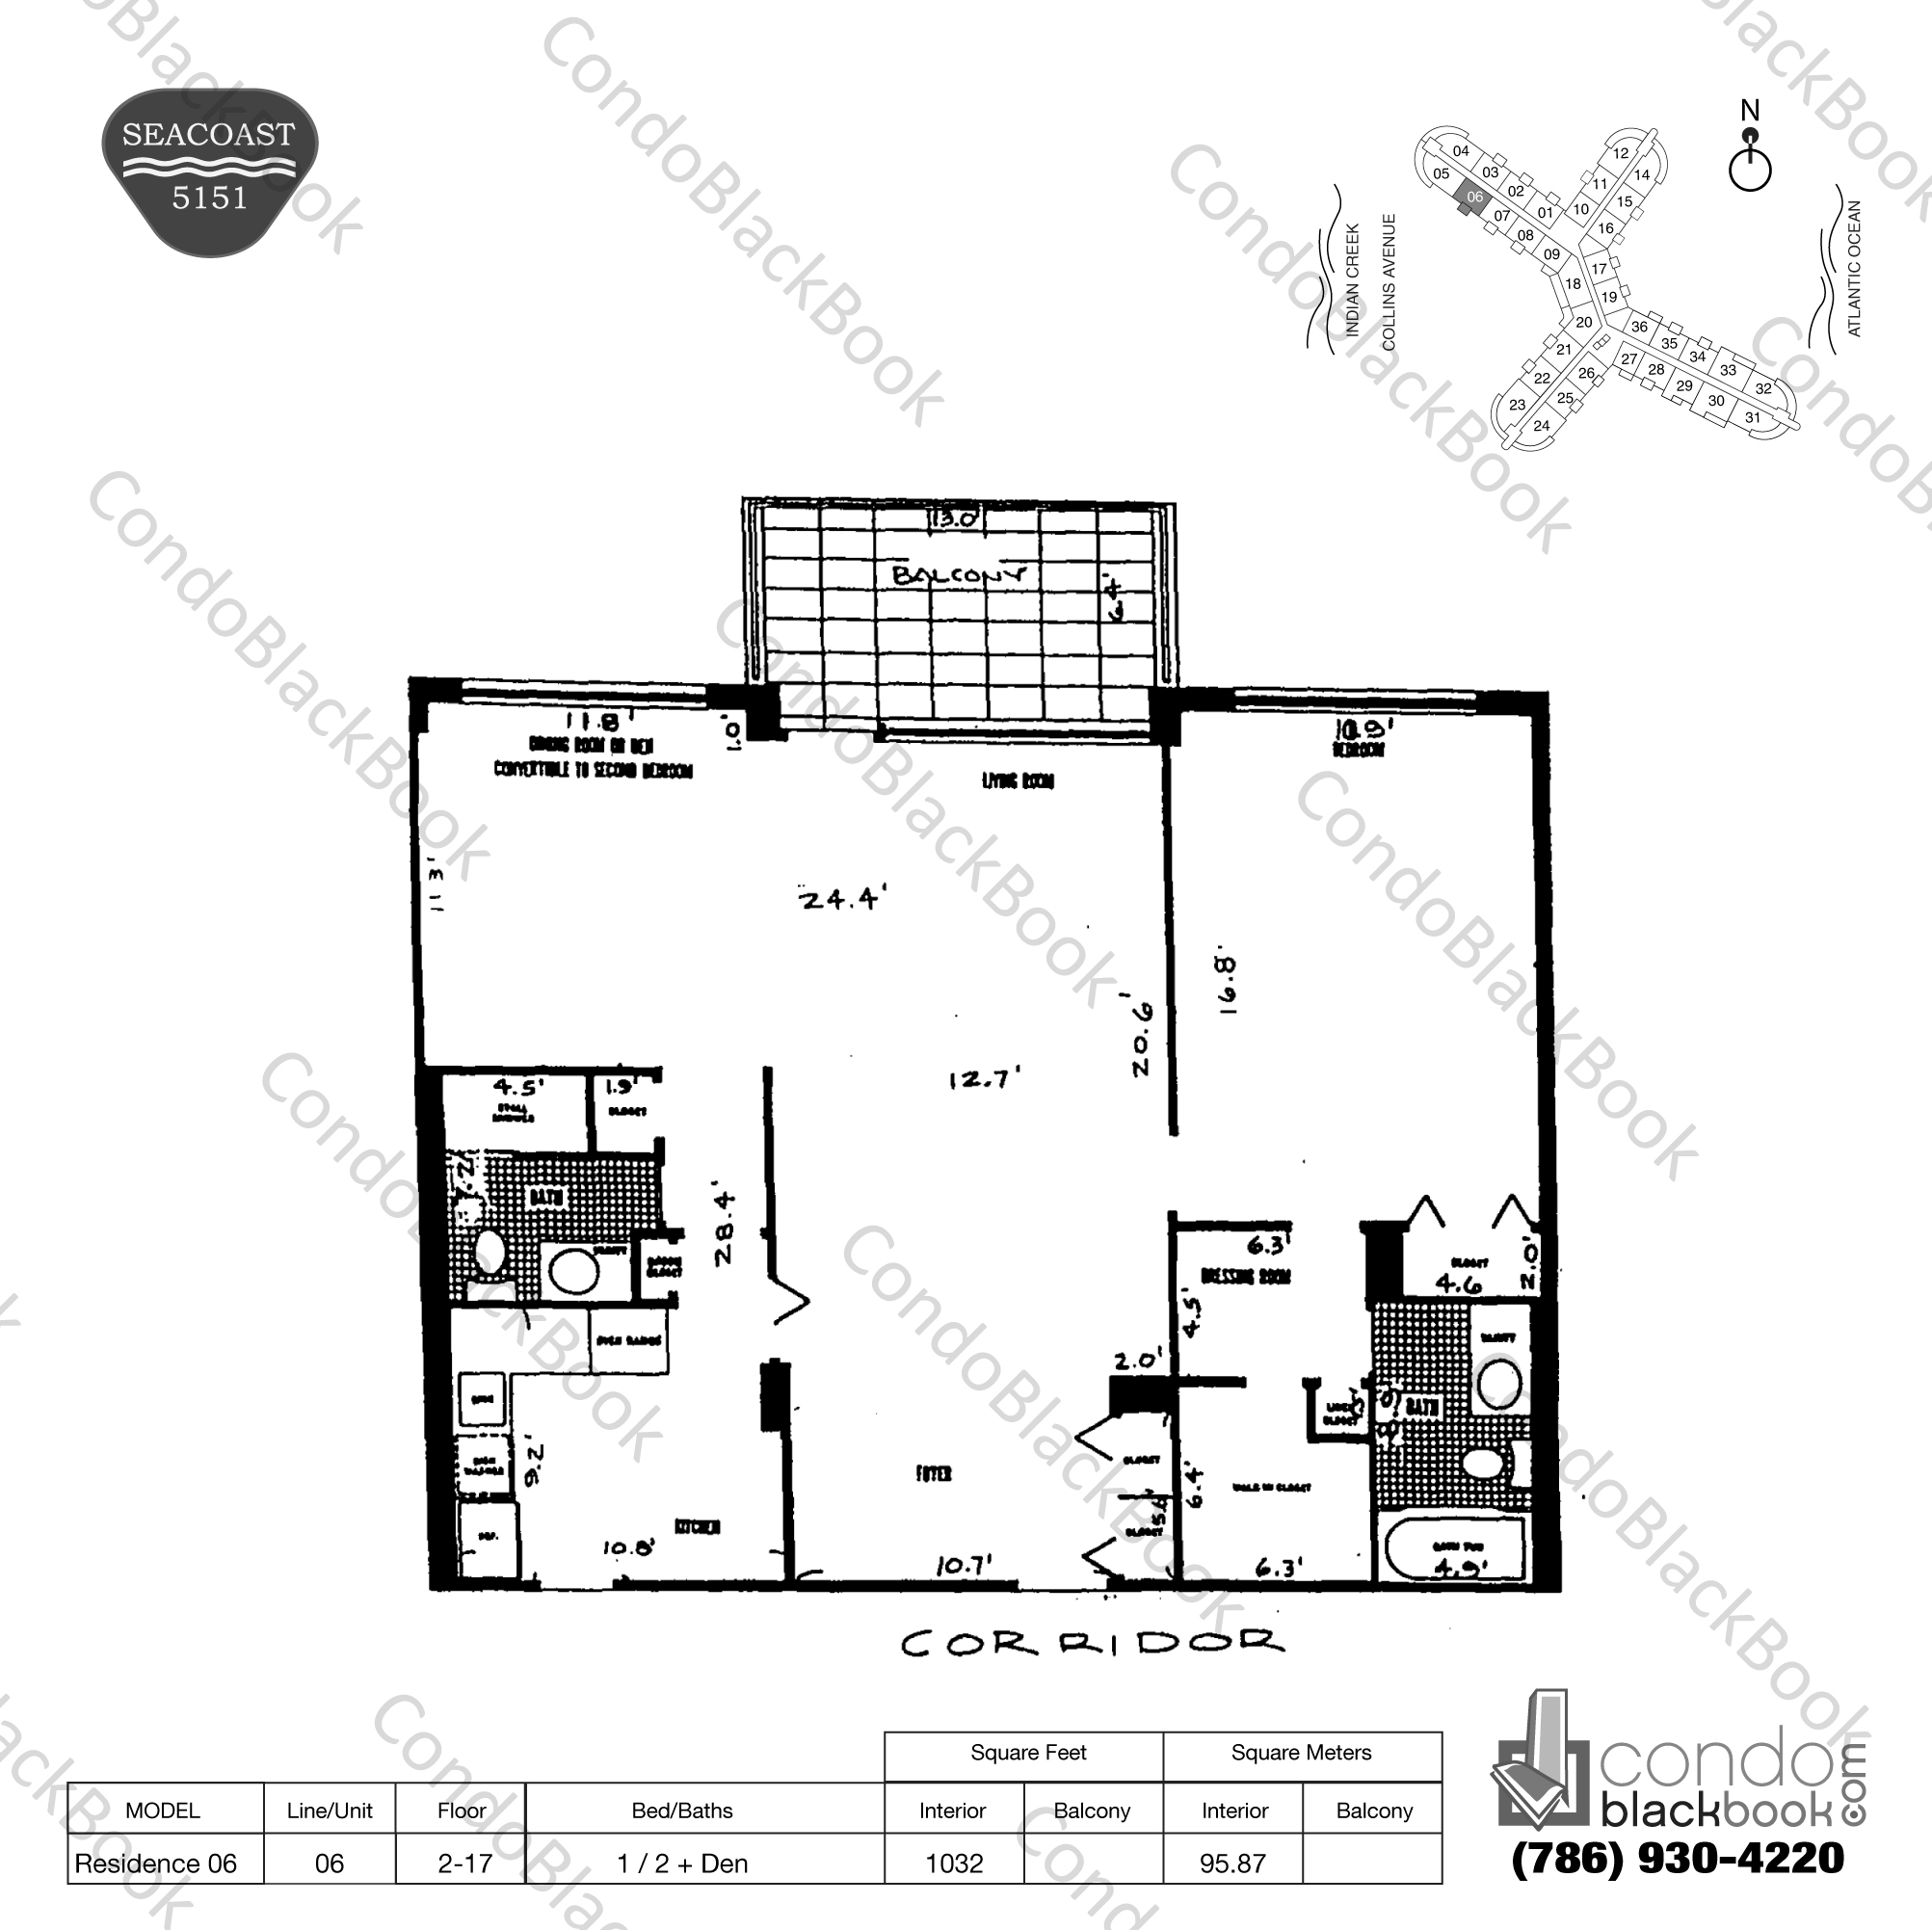 Floor plan for Seacoast 5151 Mid-Beach Miami Beach, model Residence 06, line 06, 1 / 2 + Den bedrooms, 1032 sq ft